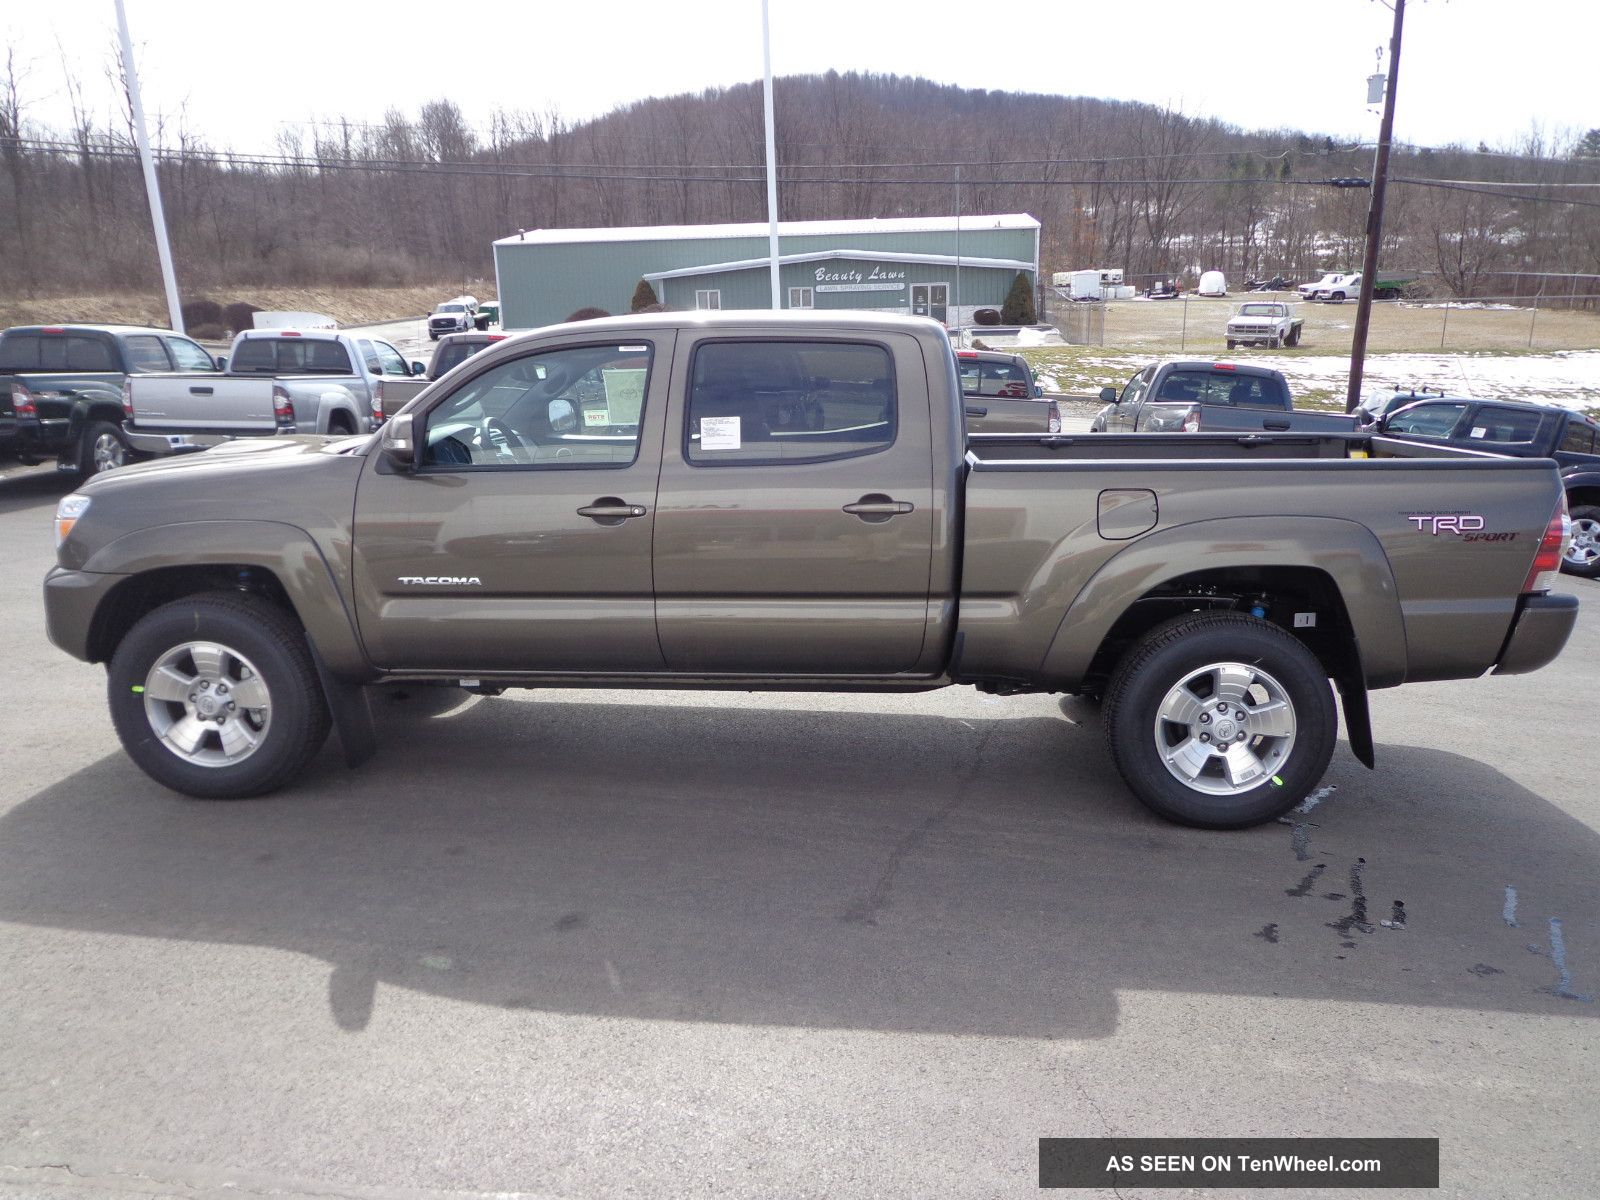 Length Of A Double Bed Toyota Tacoma Double Cab Long Bed Manual